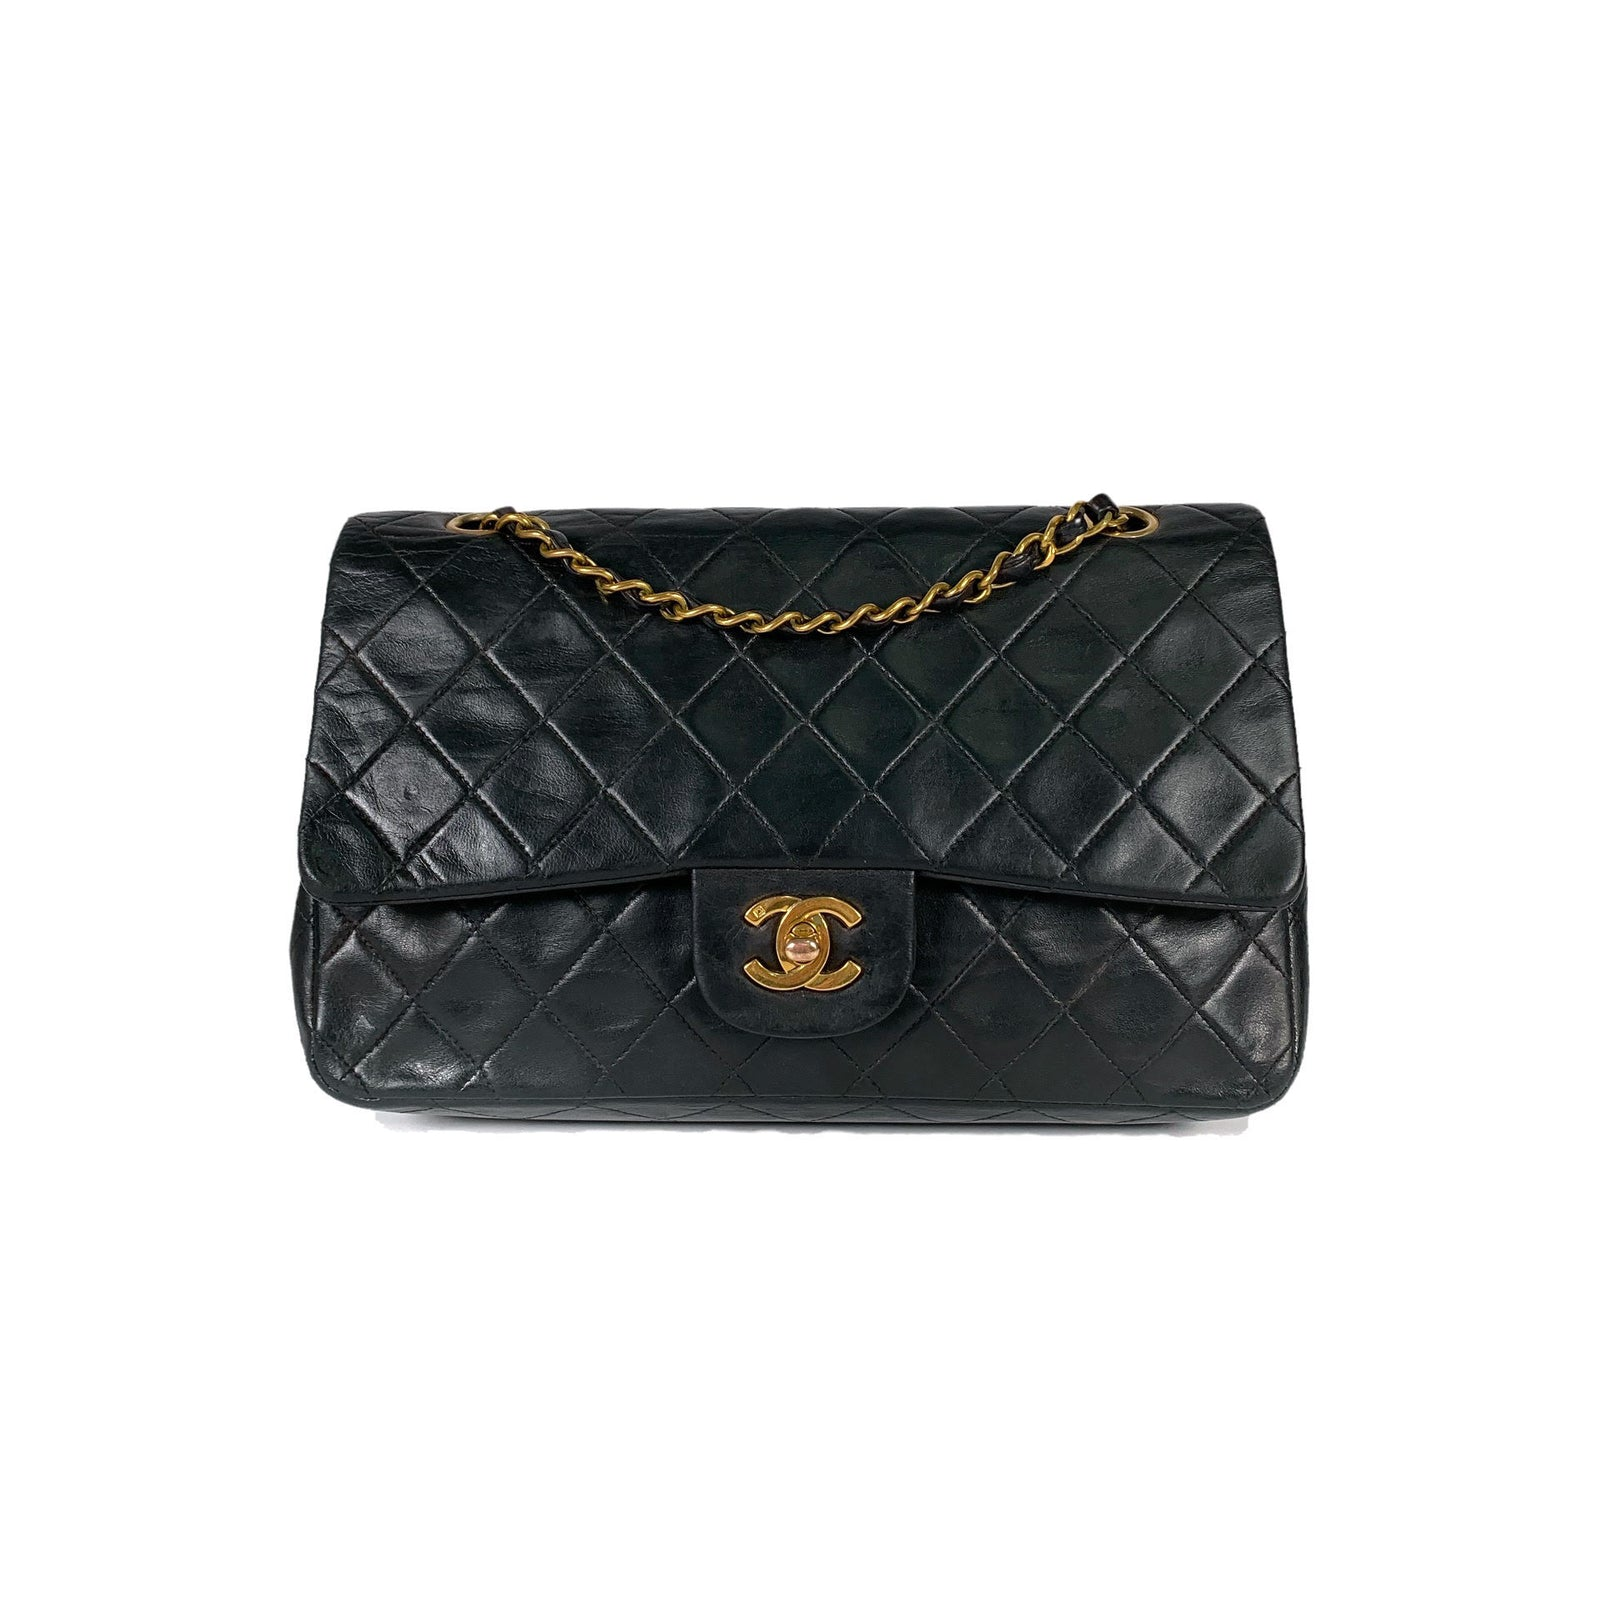 Lambskin Quilted Medium Double Flap